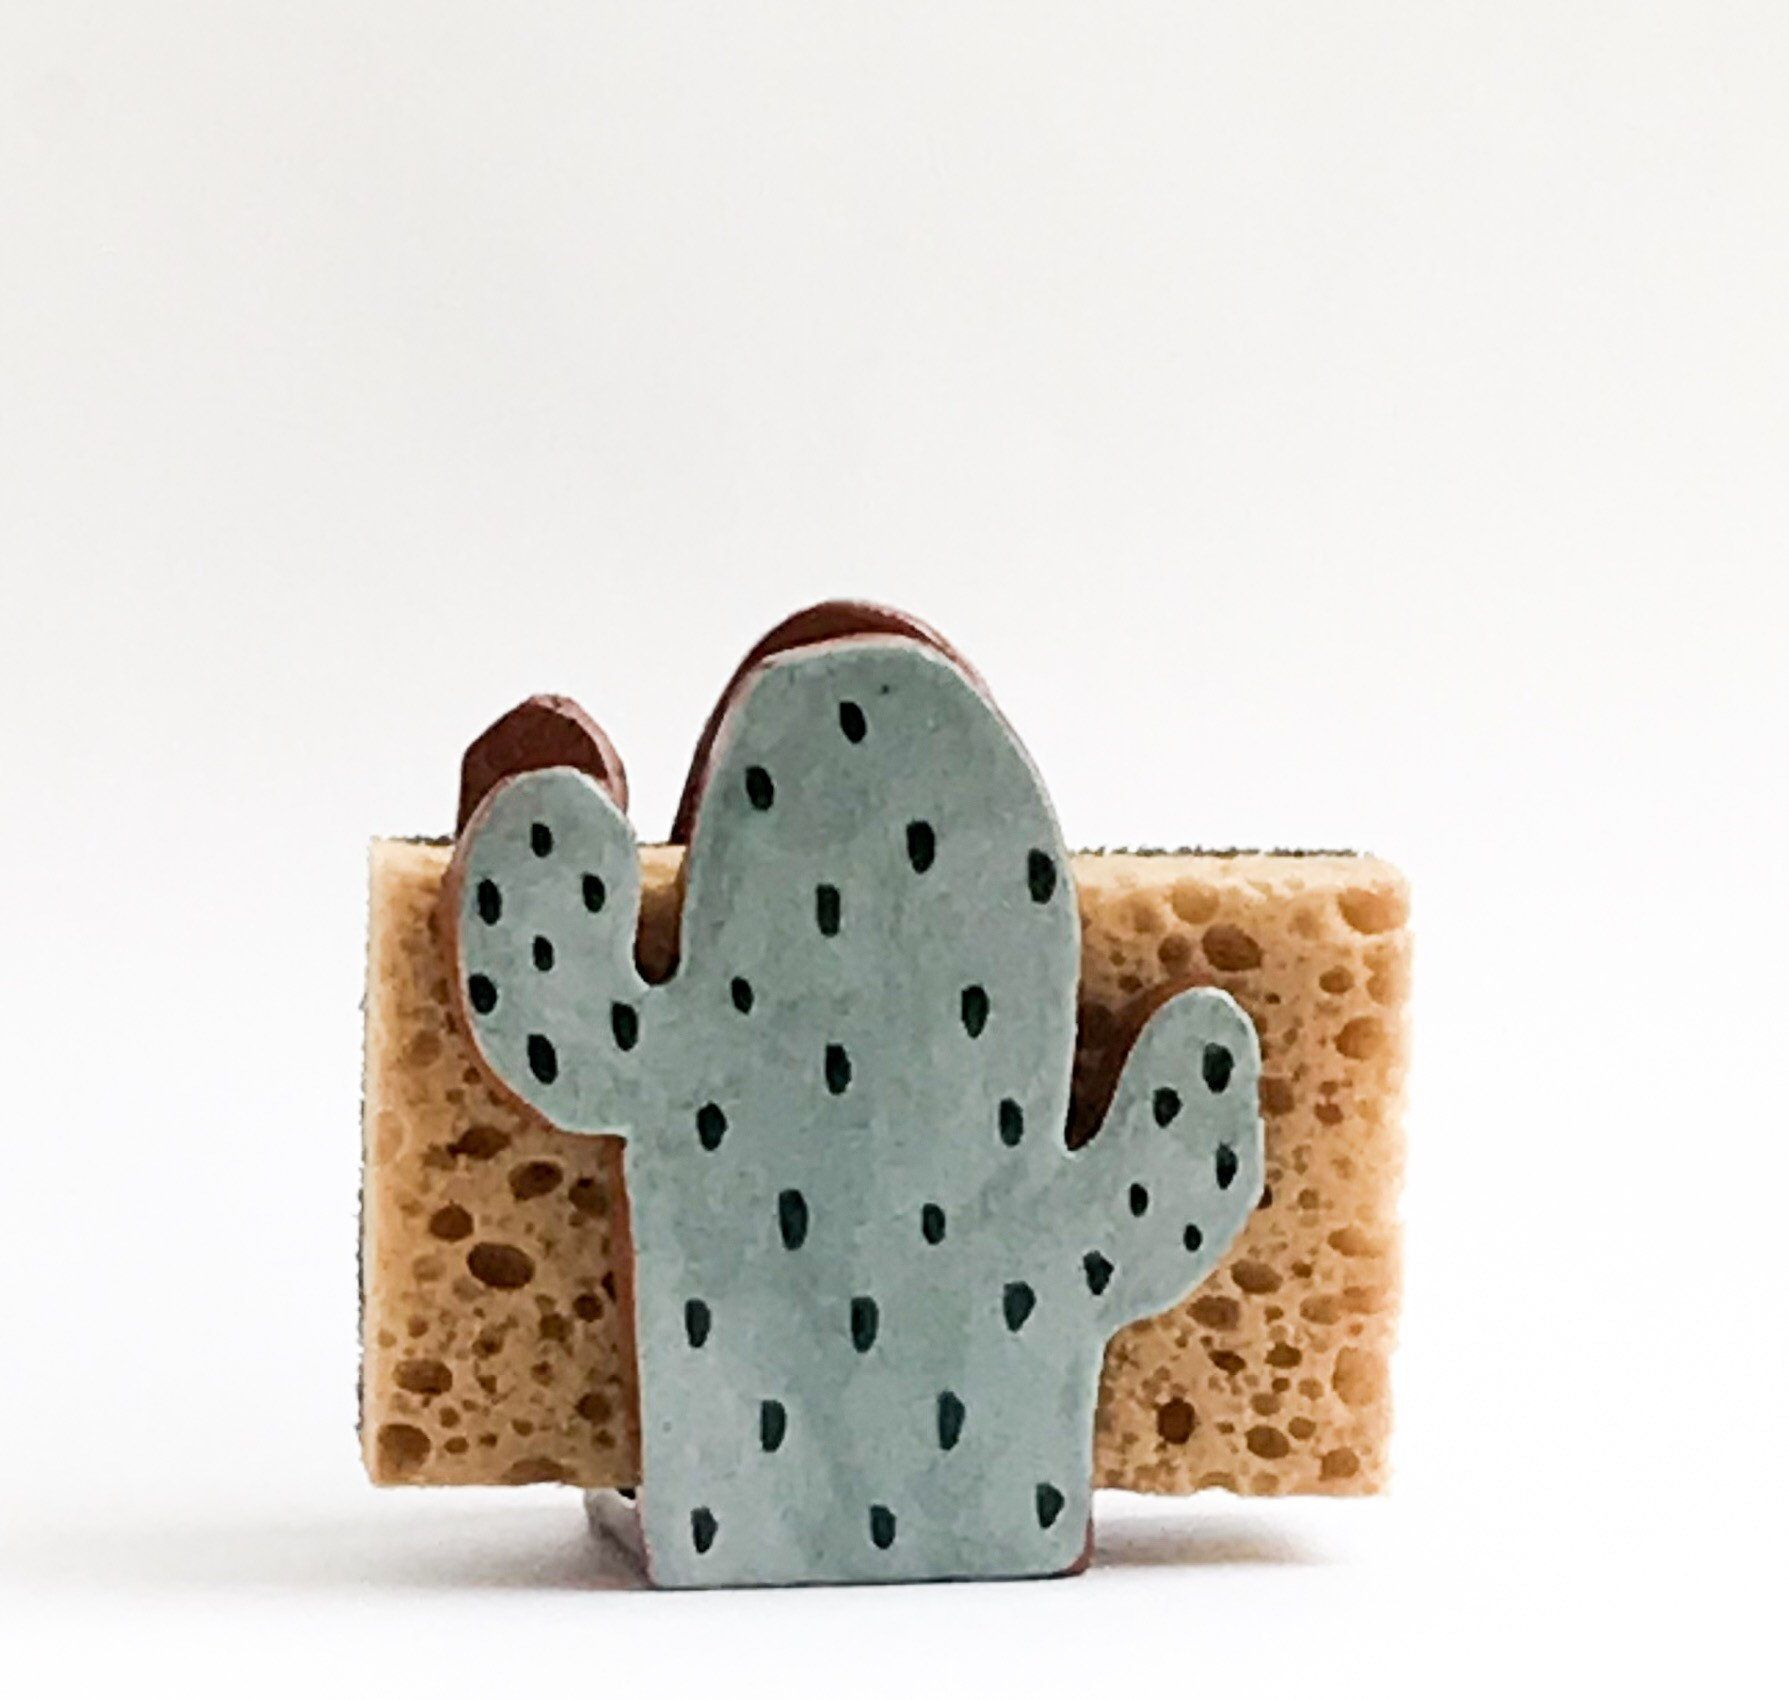 Cactus Gift-Sponge Holder-Napkin Holder-Ceramics And Pottery